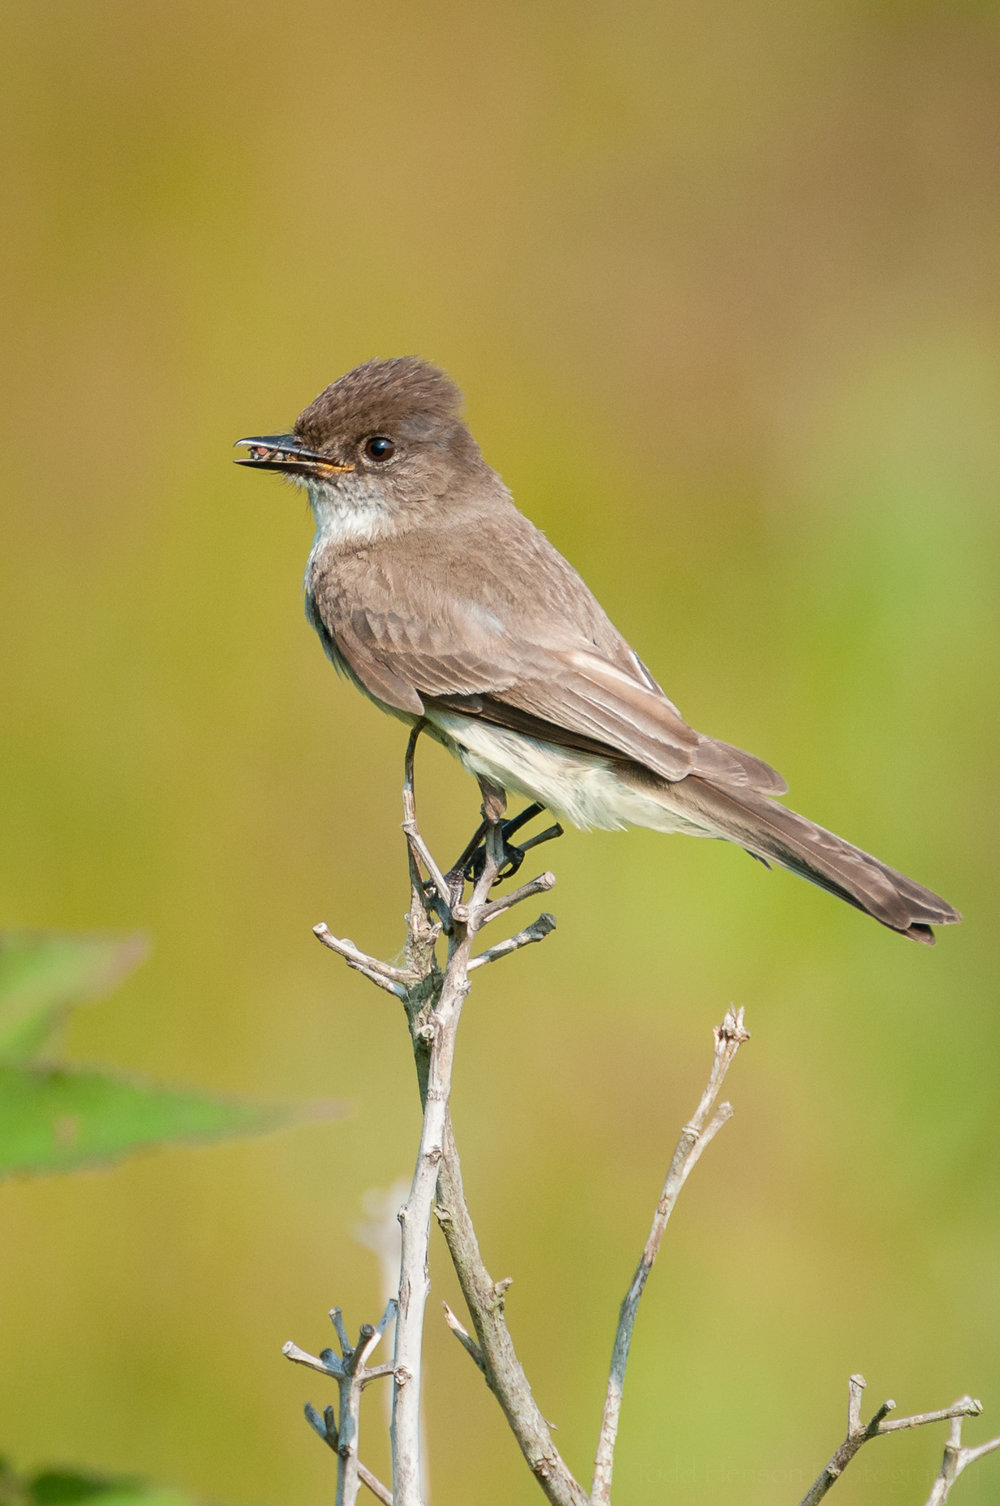 Eastern Phoebe with another insect in its beak